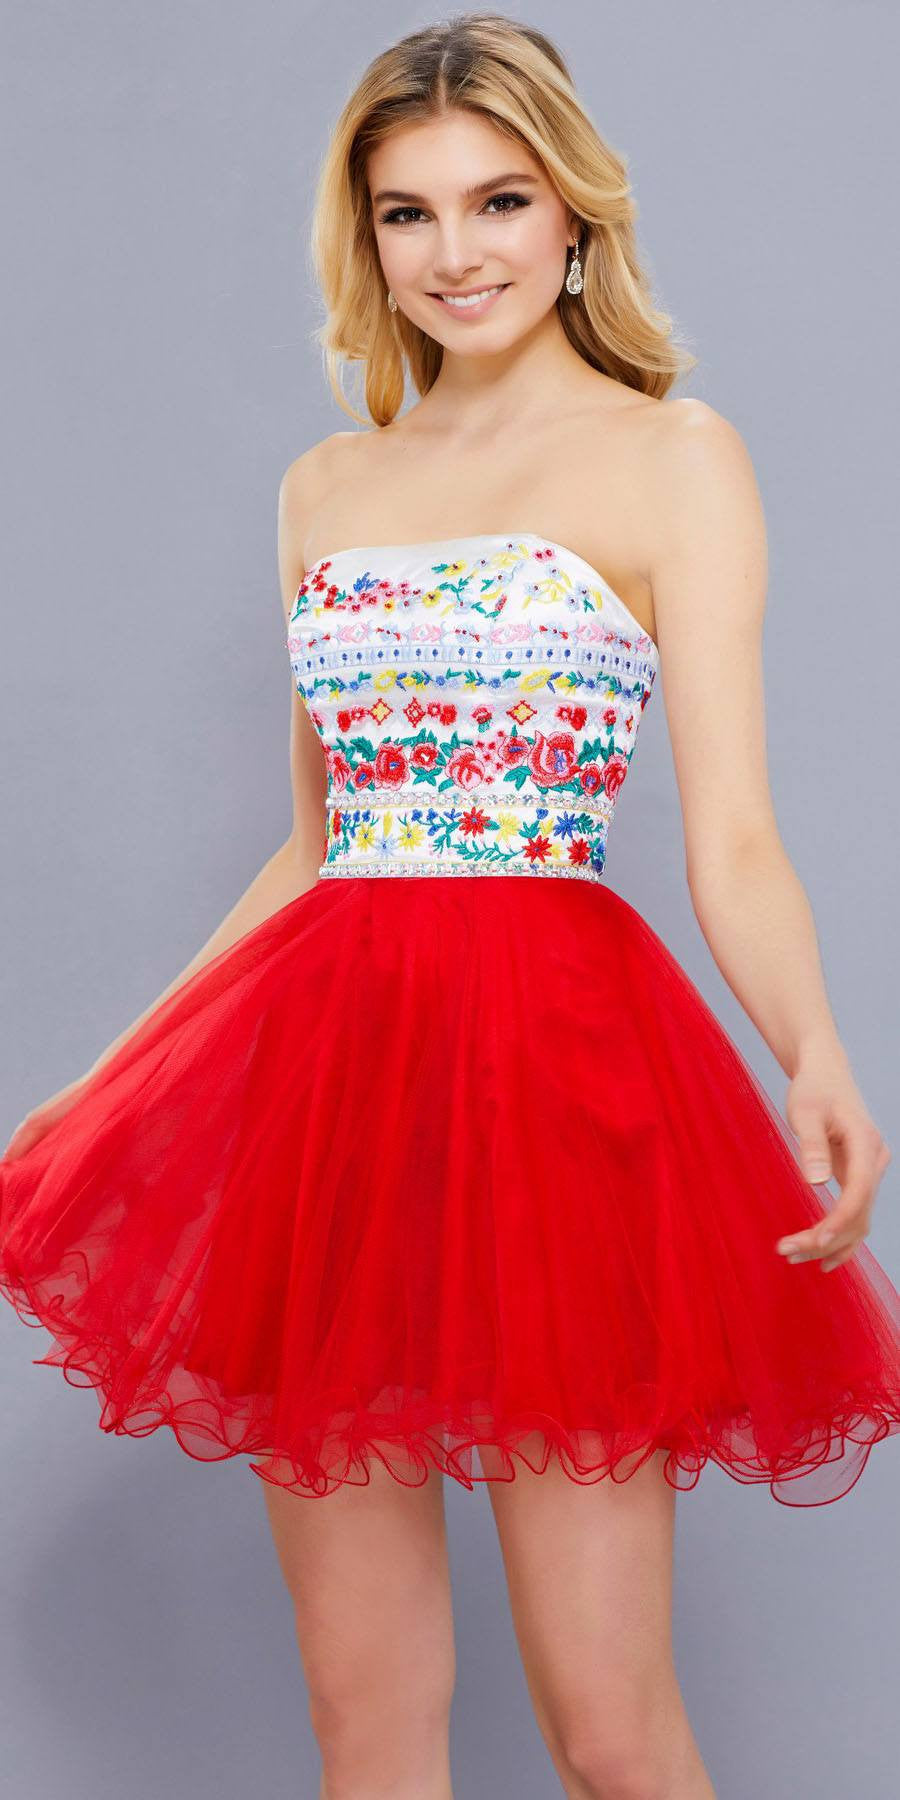 Floral Embroidered Top Strapless Short Prom Dress Red ... |Strapless Dress Top